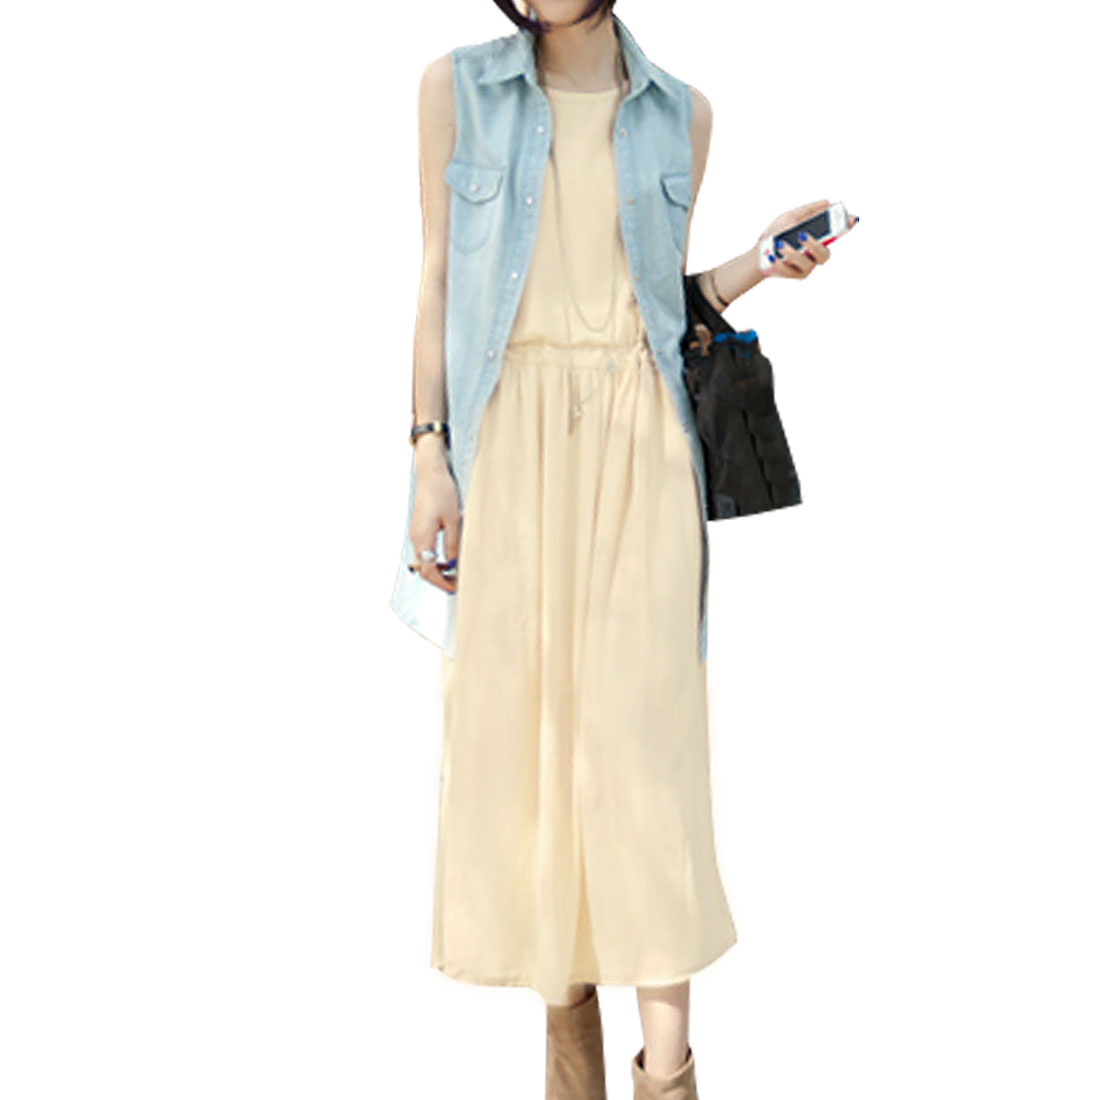 Woman Off White Color Scoop Neck Drawstring Waist Long Tank Dress XS